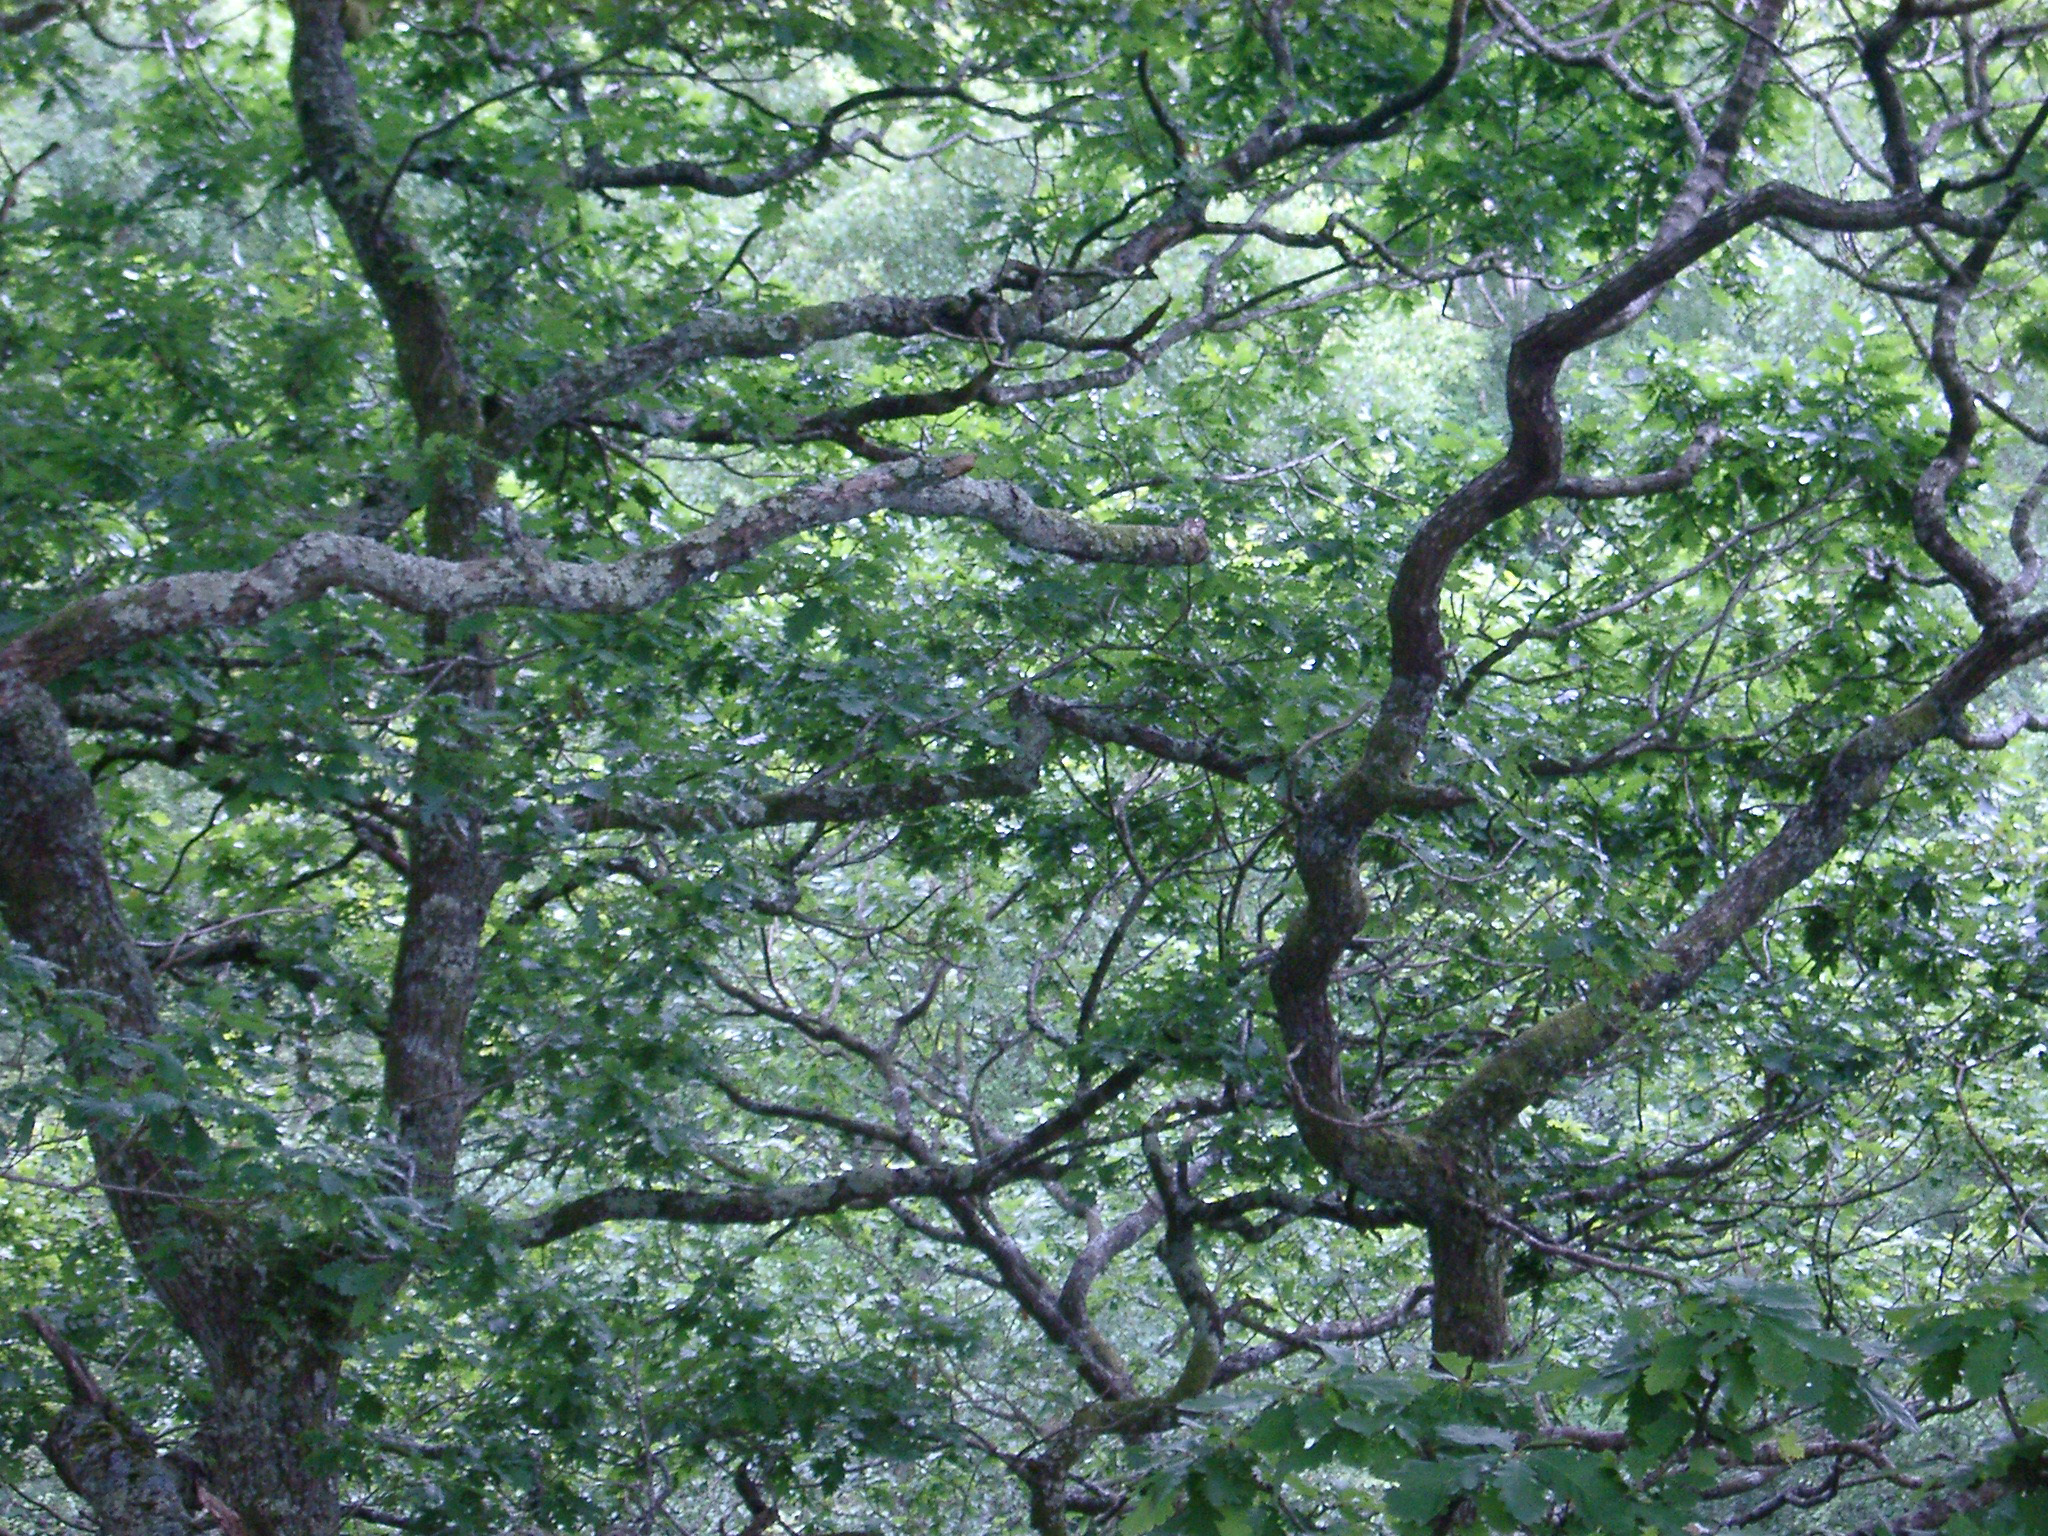 Tracery of leafy green tree branches on a misty day with close up detail of the canopy